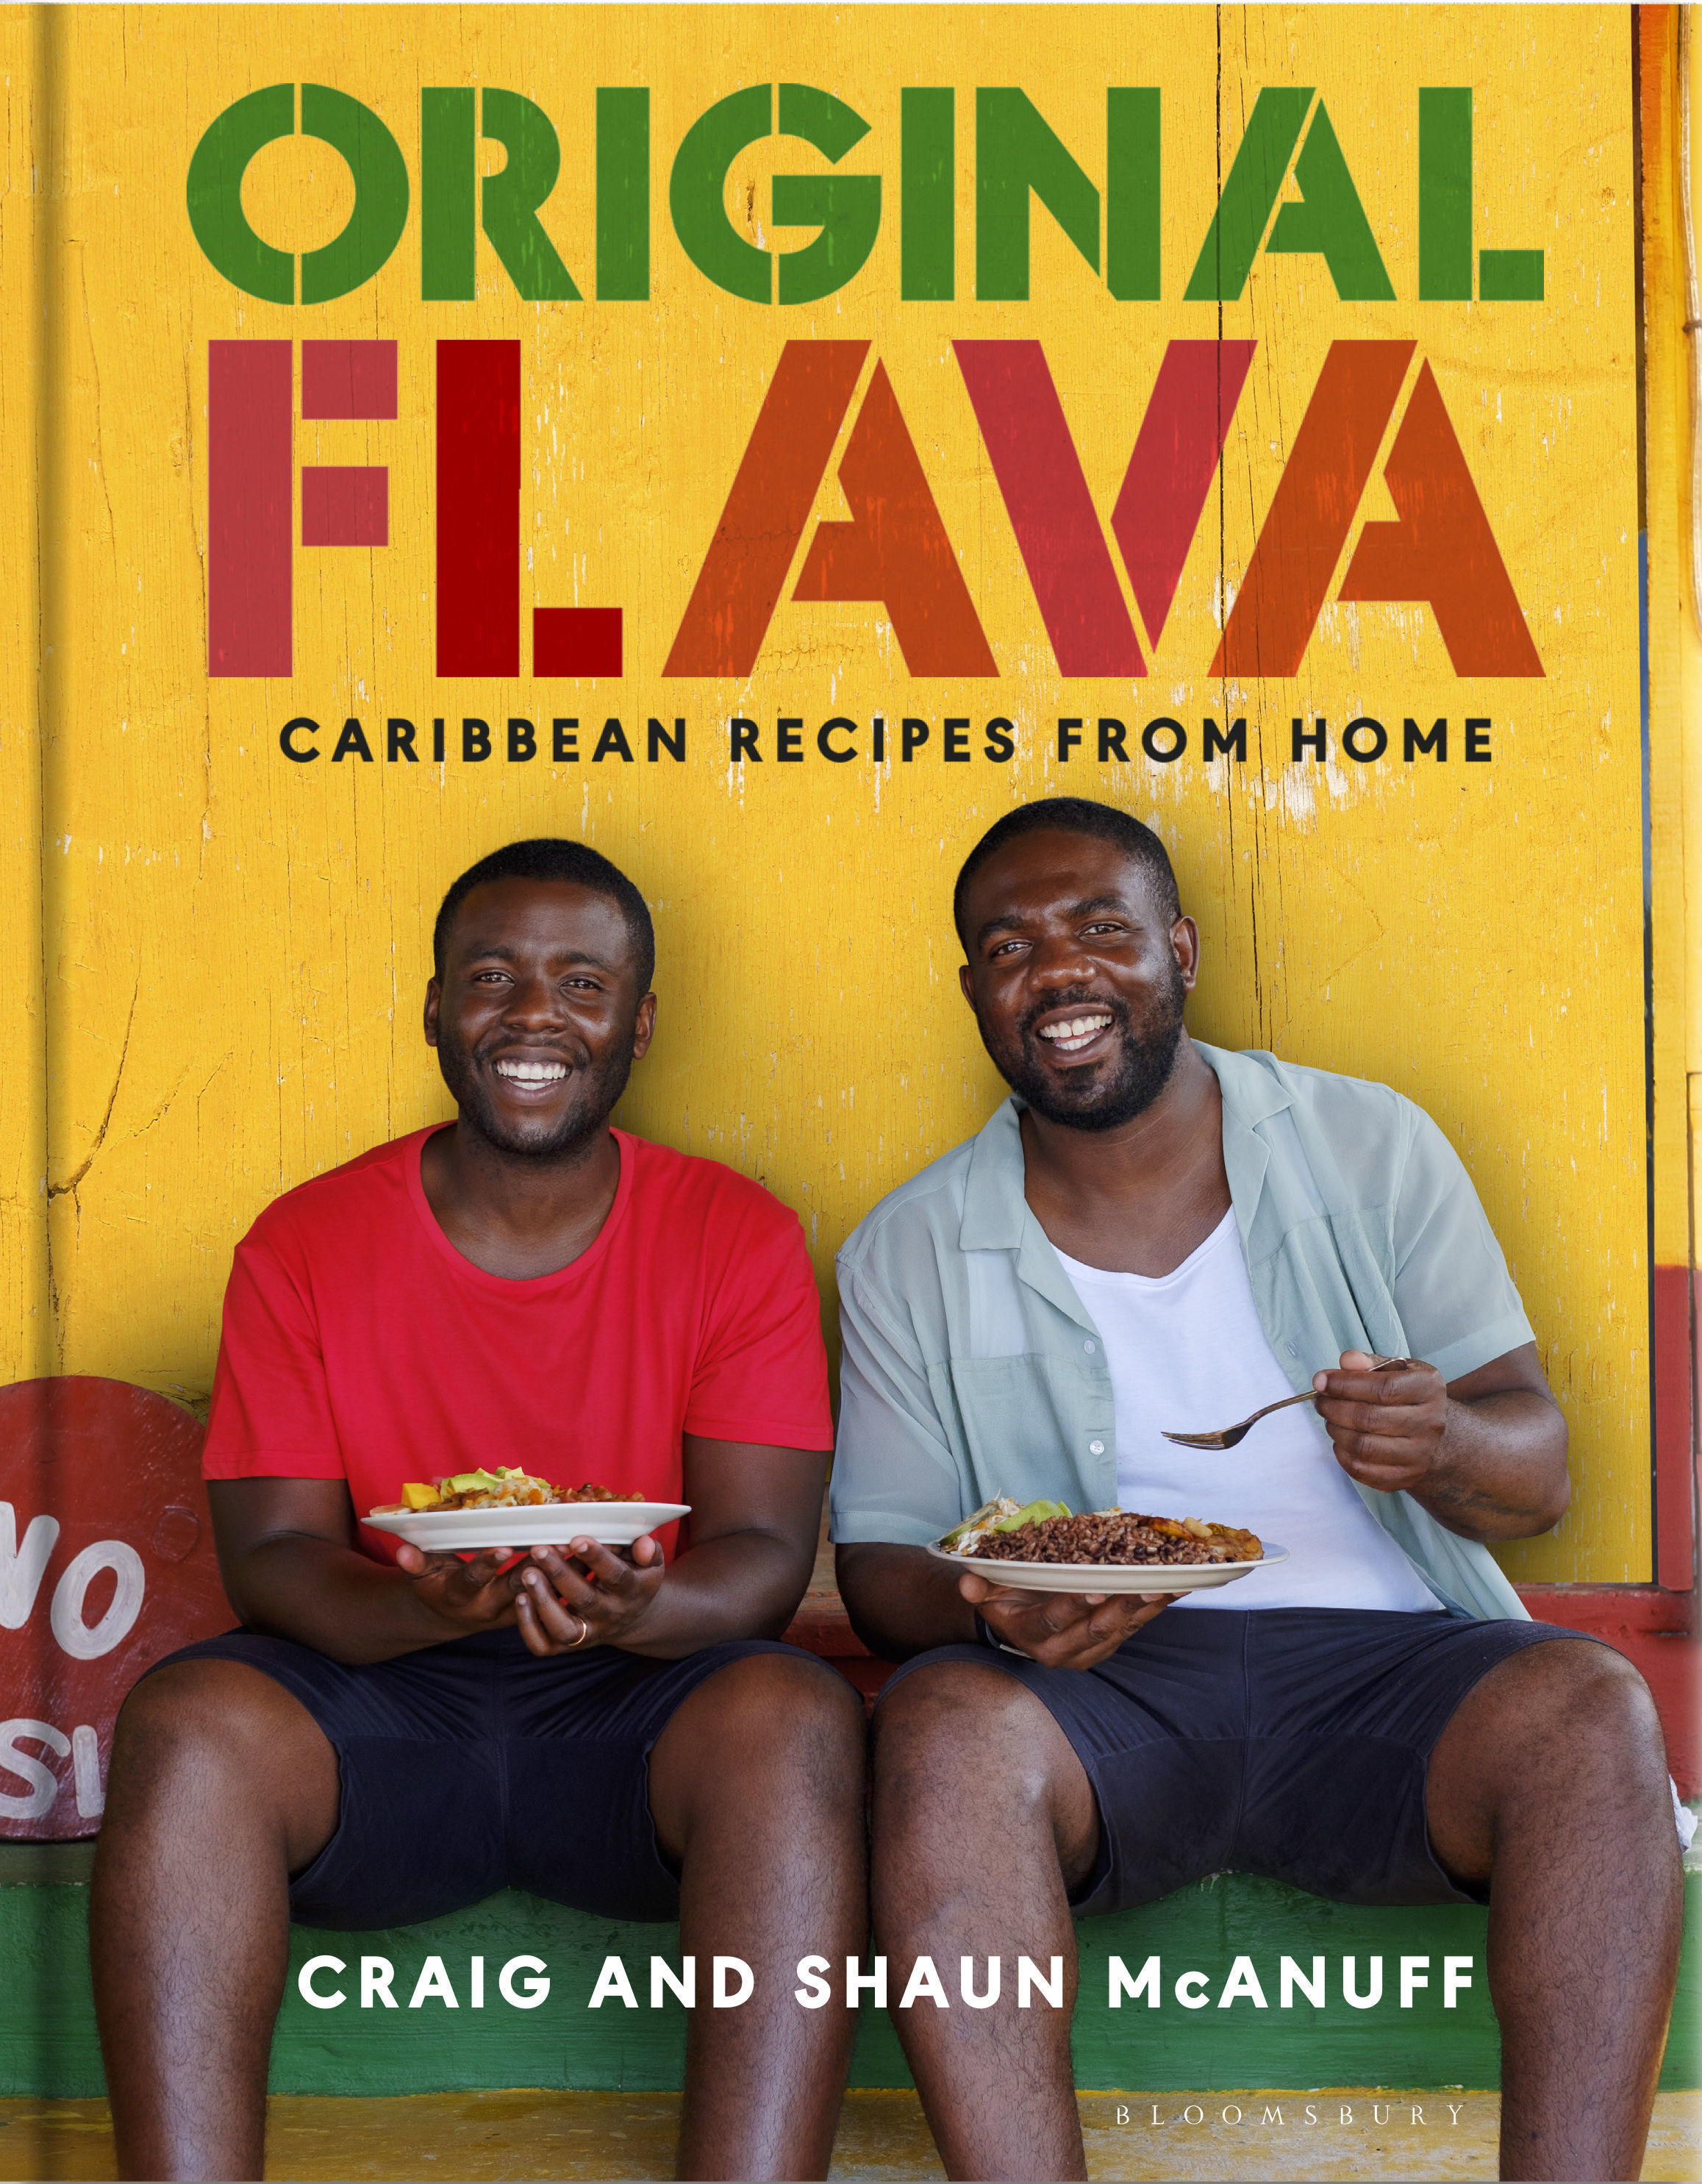 Cook these: 3 recipes from YouTube stars Original Flava